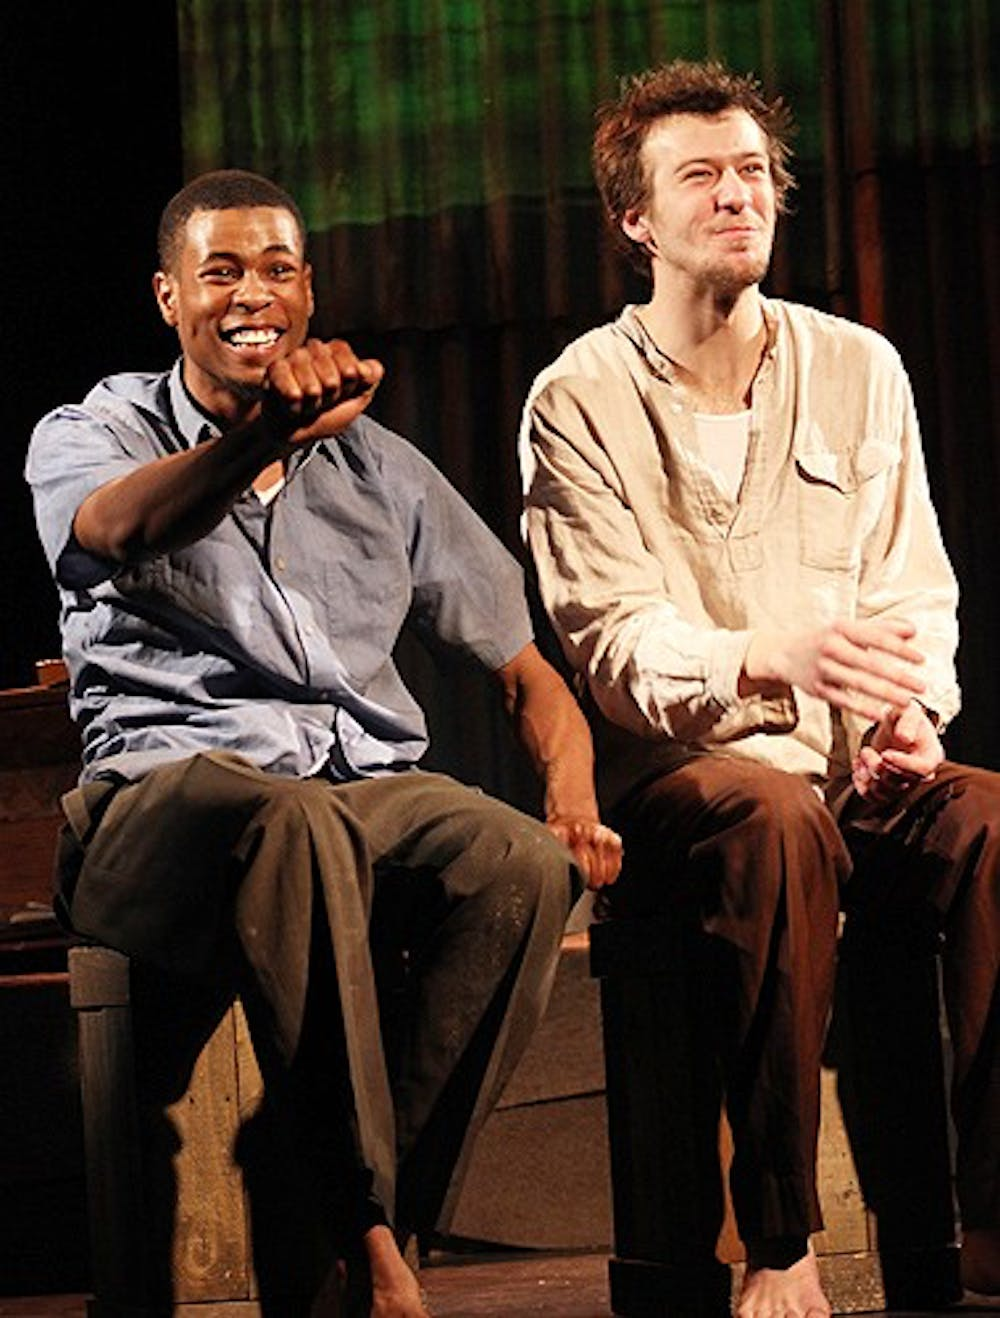 """""""Act of Witness"""" features two theatrical events, """"Blood Knot"""" and """"Poetic Portraits of a Revolution."""" The two events will be performed in rotating repertory at the Carrboro Arts Center March 2nd through the 20th. Blood Knot features J. Alphonse Nicholson (left) and Lucius Robinson (right)."""